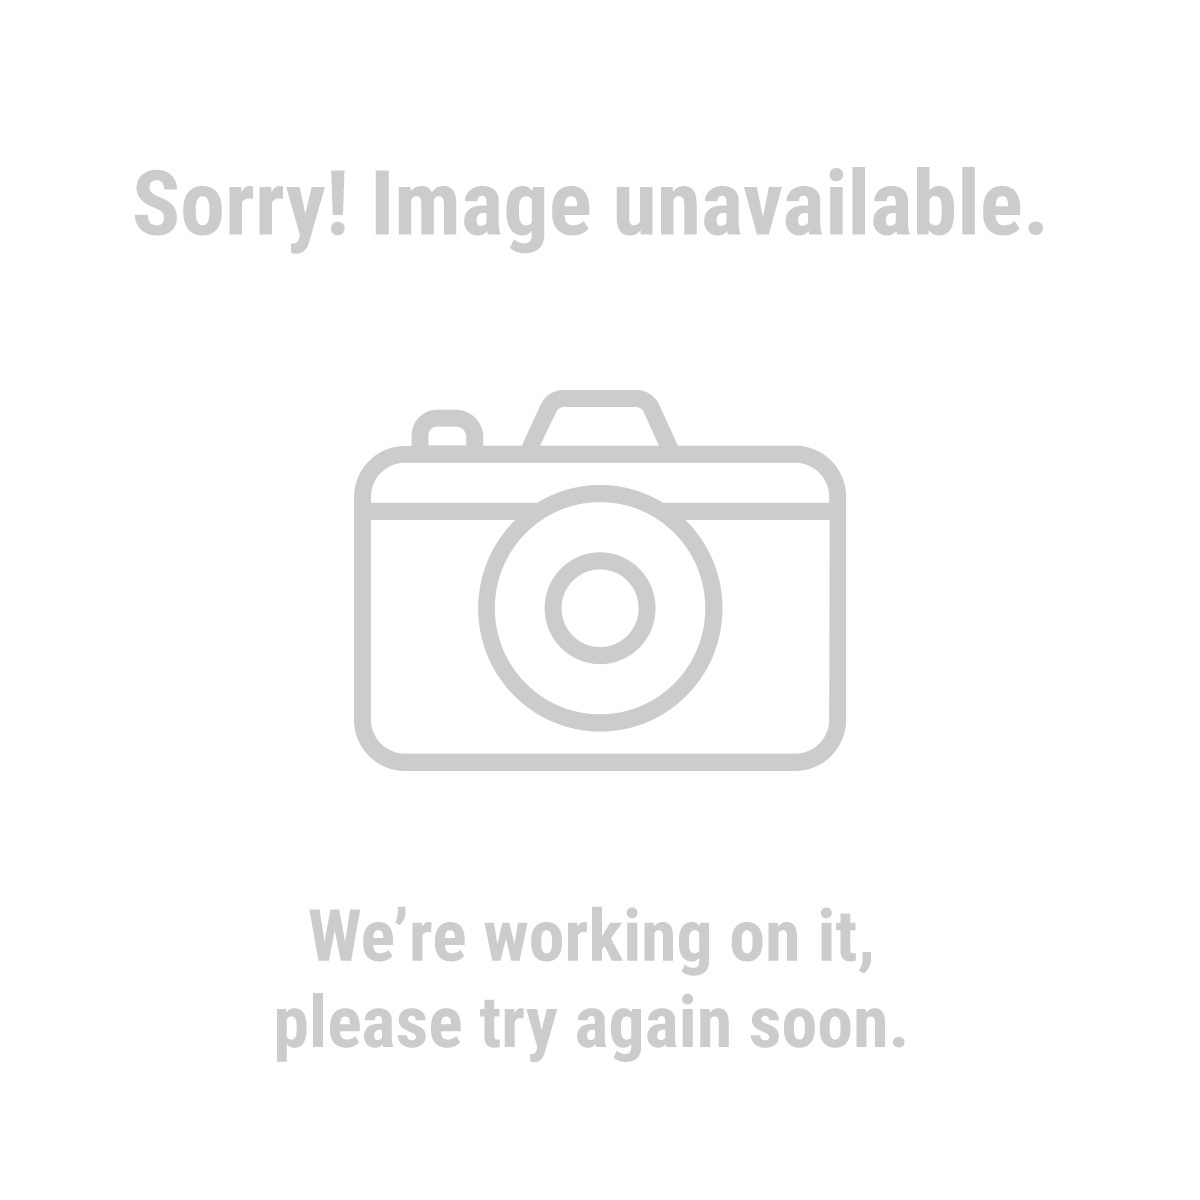 Pittsburgh® 96733 26 Piece Ratchet Screwdriver Set